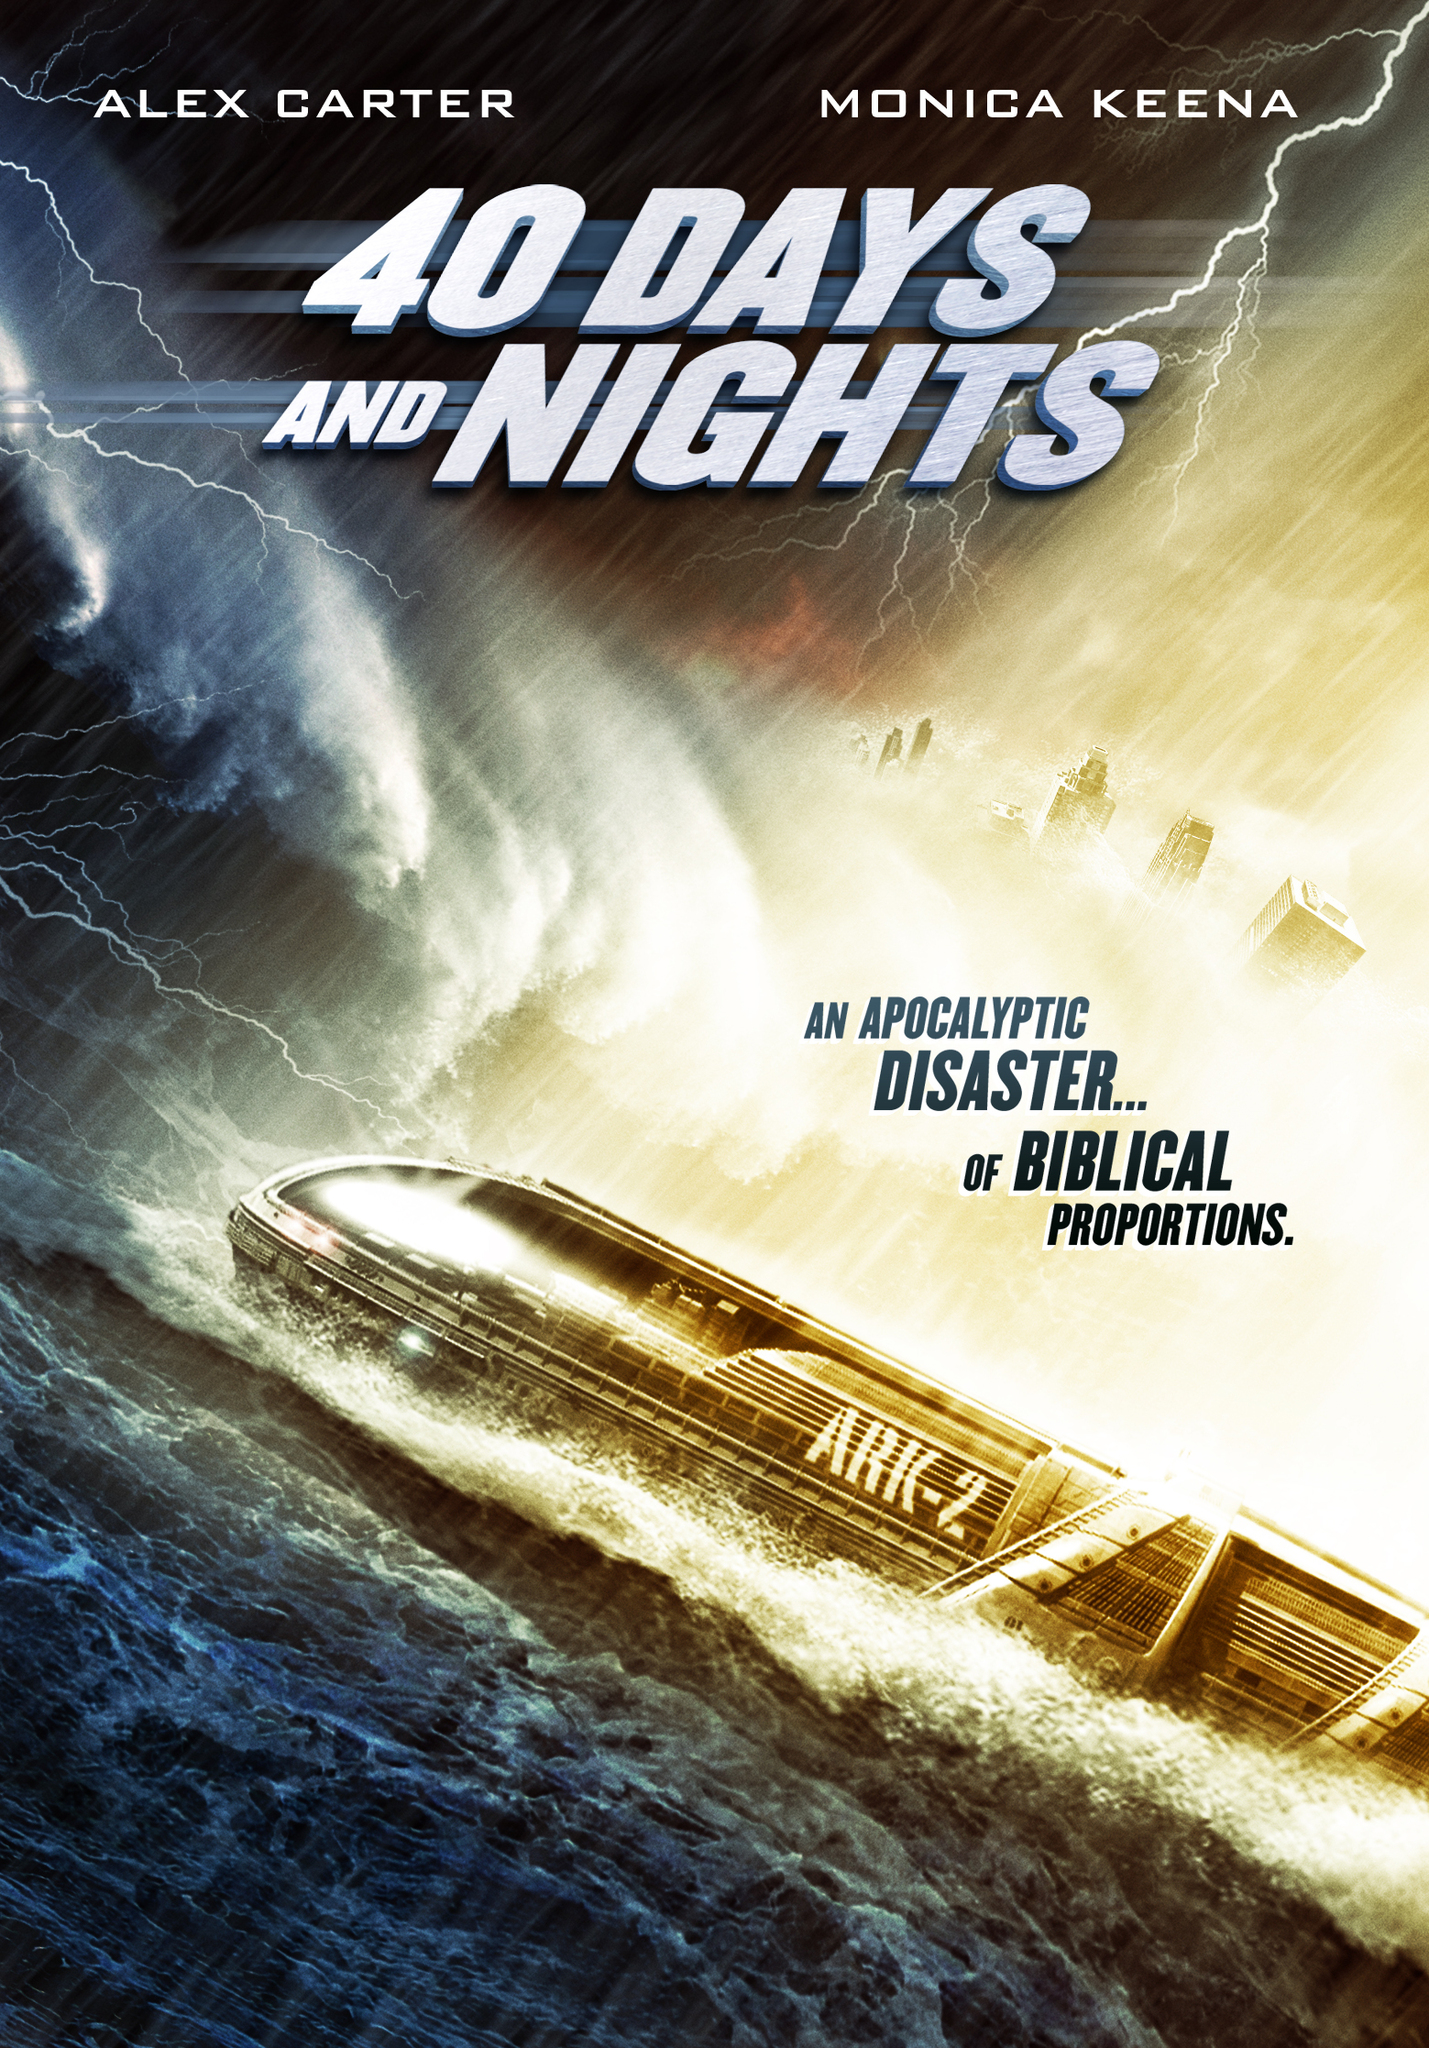 40 days and nights 2012 full movie free download